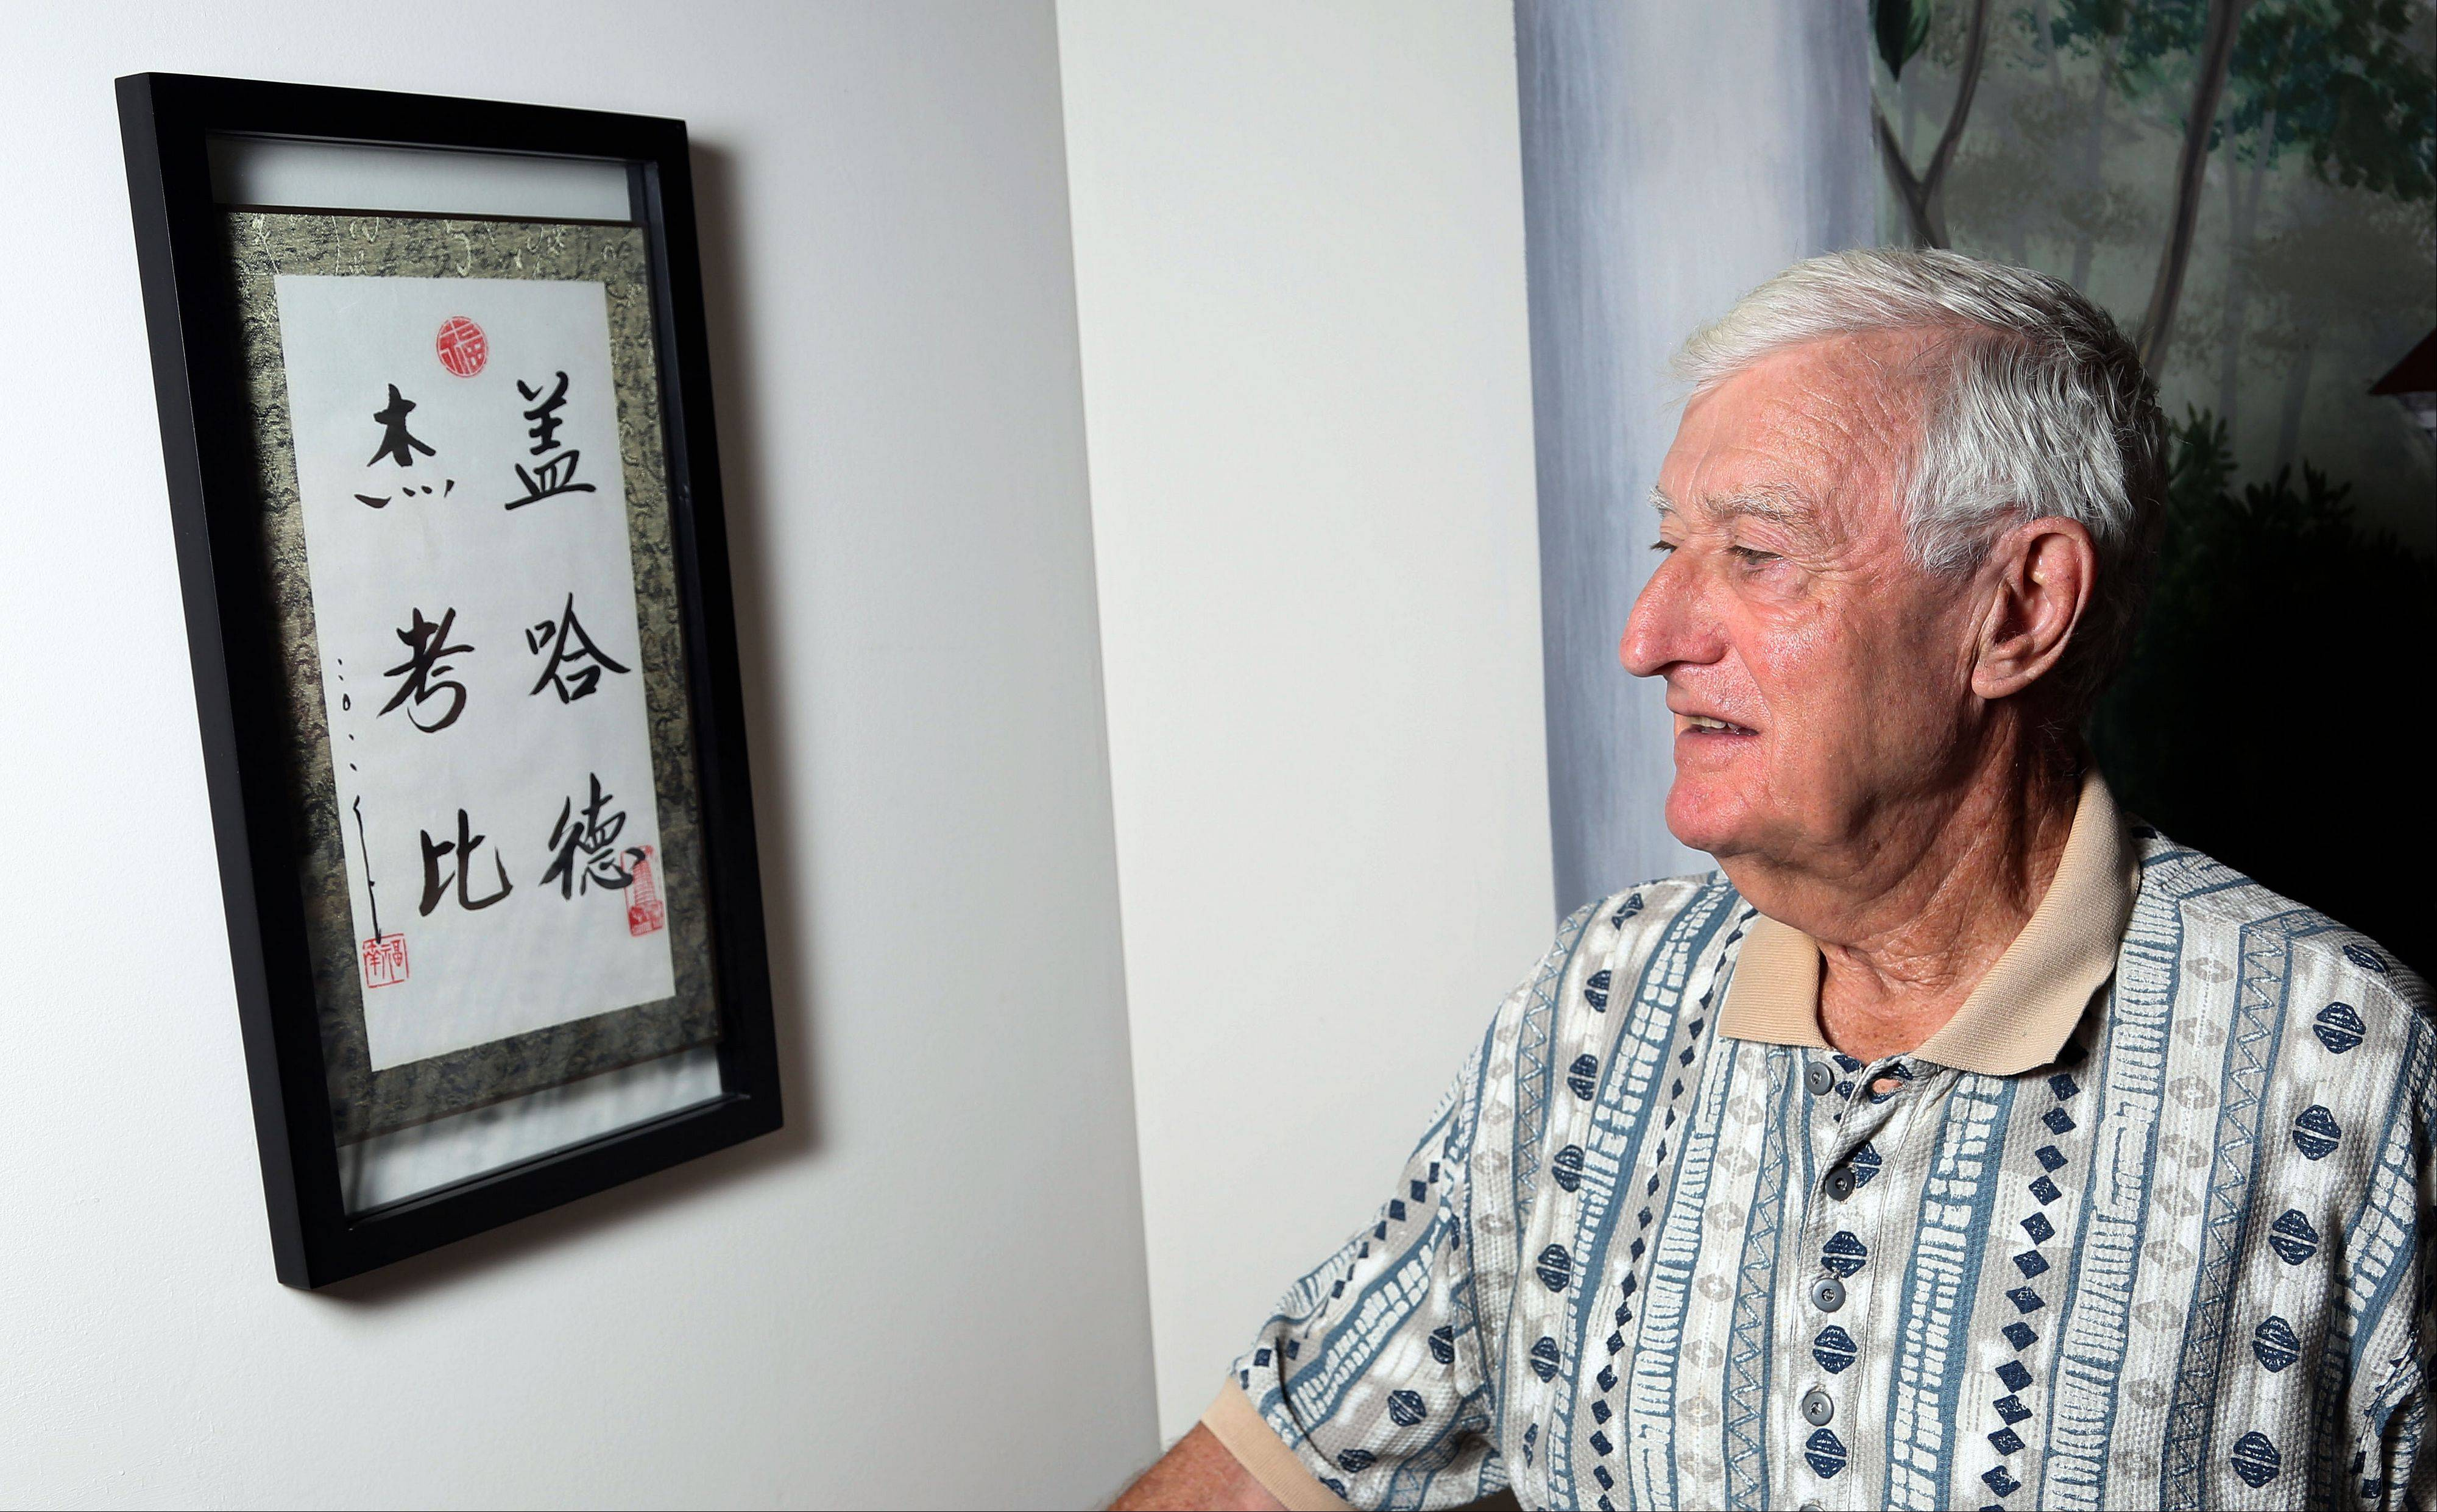 Gerry Jacoby of Lincolnshire looks at Chinese characters that spell his name. Jacoby lived in a ghetto in China to avoid Nazi persecution during World War II.